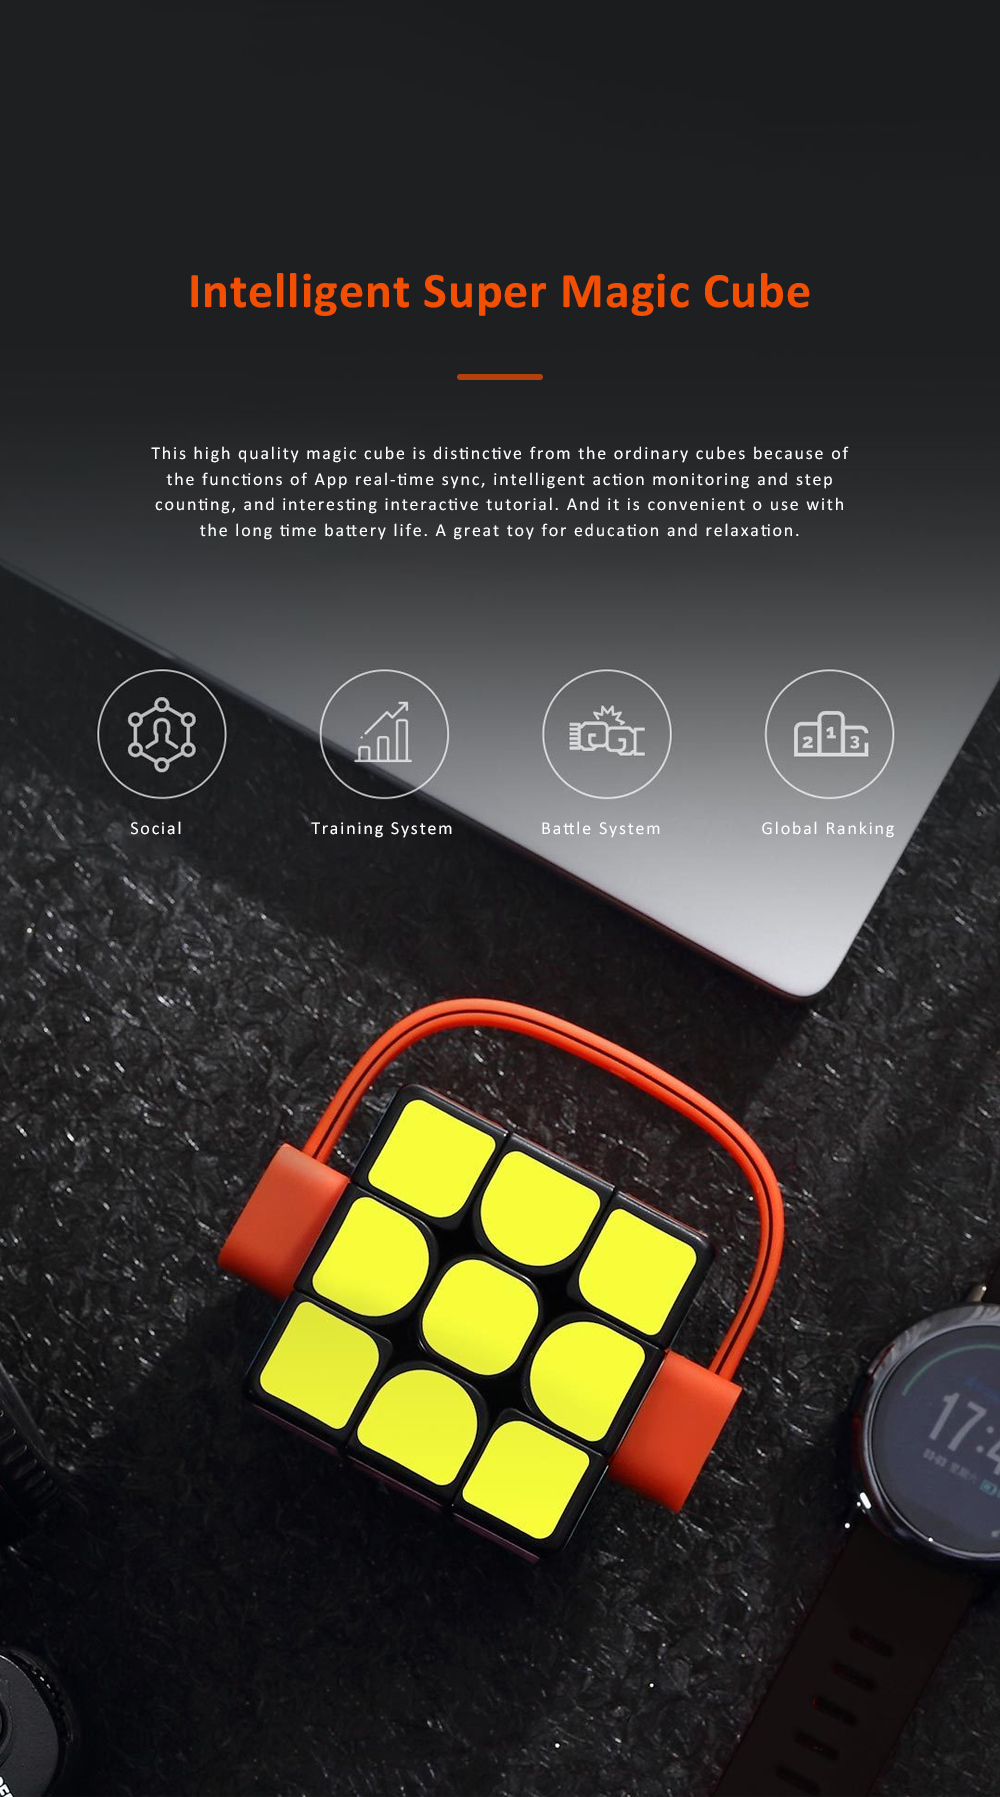 MI GIIKER Intelligent Super Cube Smart Magic Cube with Bluetooth Connection Real-time Sync for Education and Playing 0